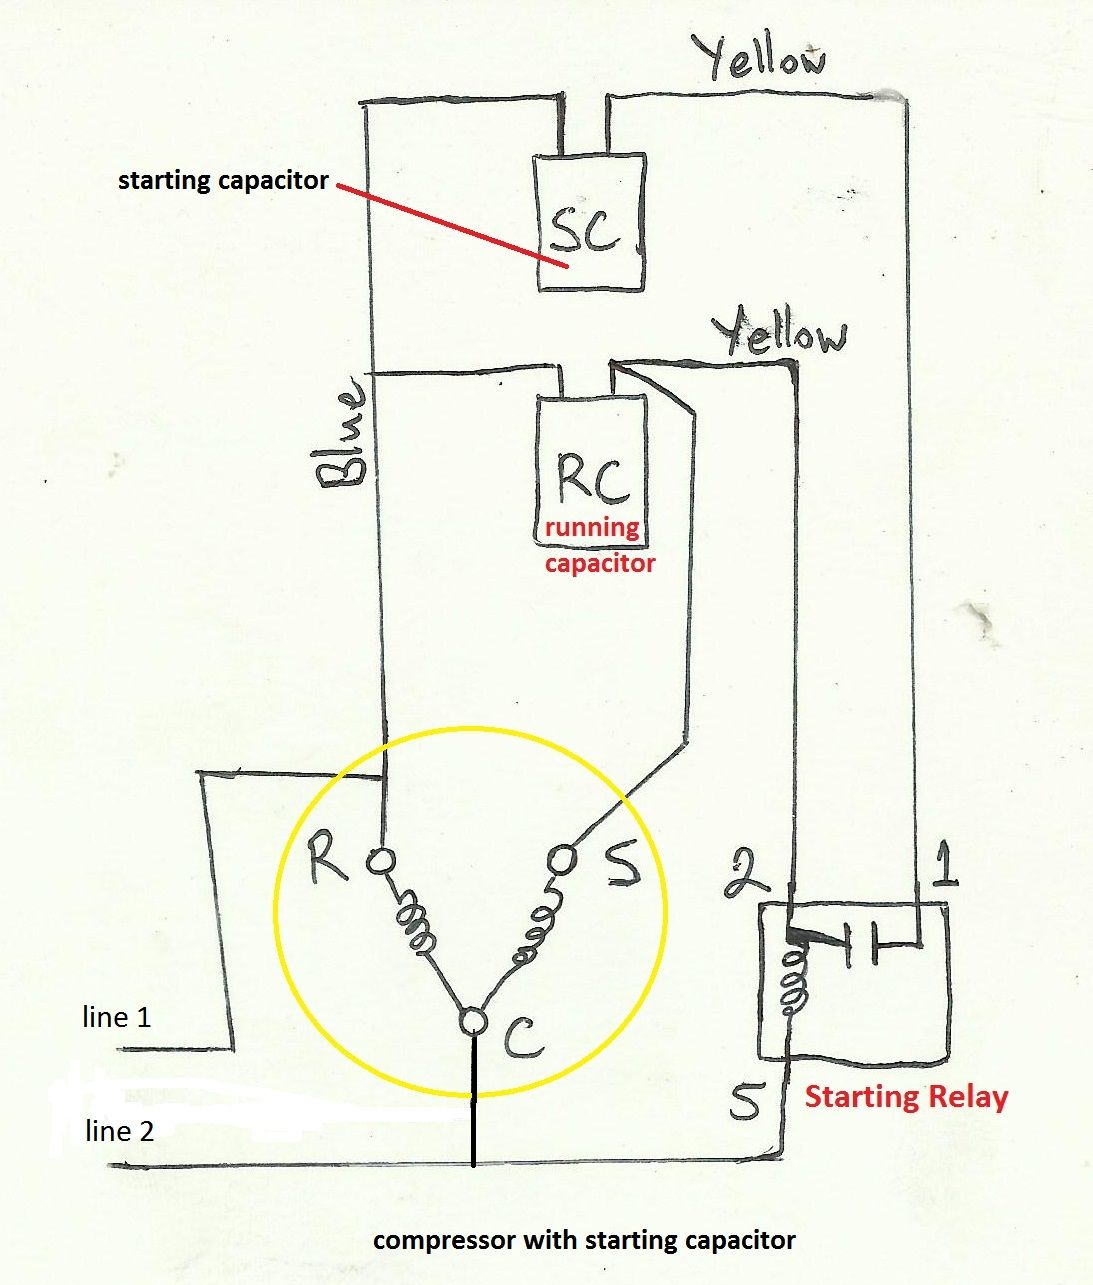 wrg 9303] 220 volts a c compressor and cooling fan wiring Air Compressors Wiring Schematic For 2